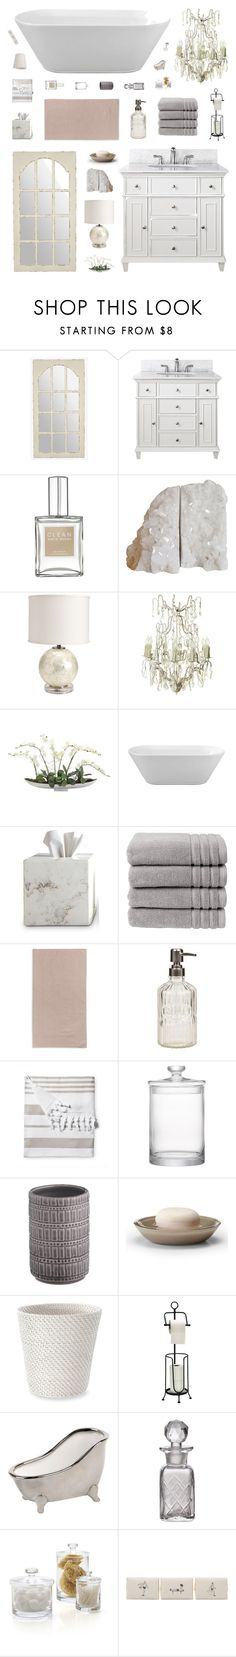 """Retro Romantic Bathroom Decor"" by belenloperfido ❤ liked on Polyvore featuring interior, interiors, interior design, home, home decor, interior decorating, Avanity, Ballard Designs, Flamant and Waterworks"